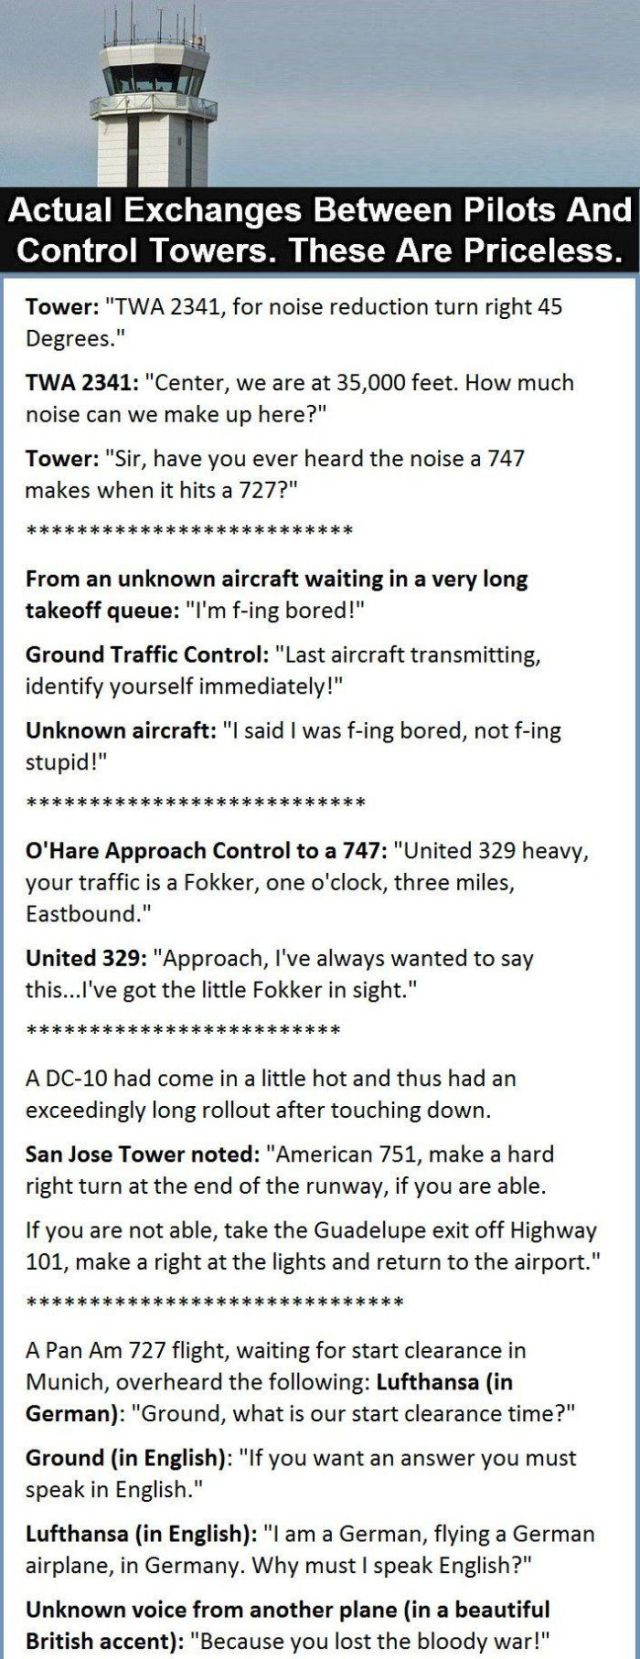 Real funny conversations between pilots and control towers.